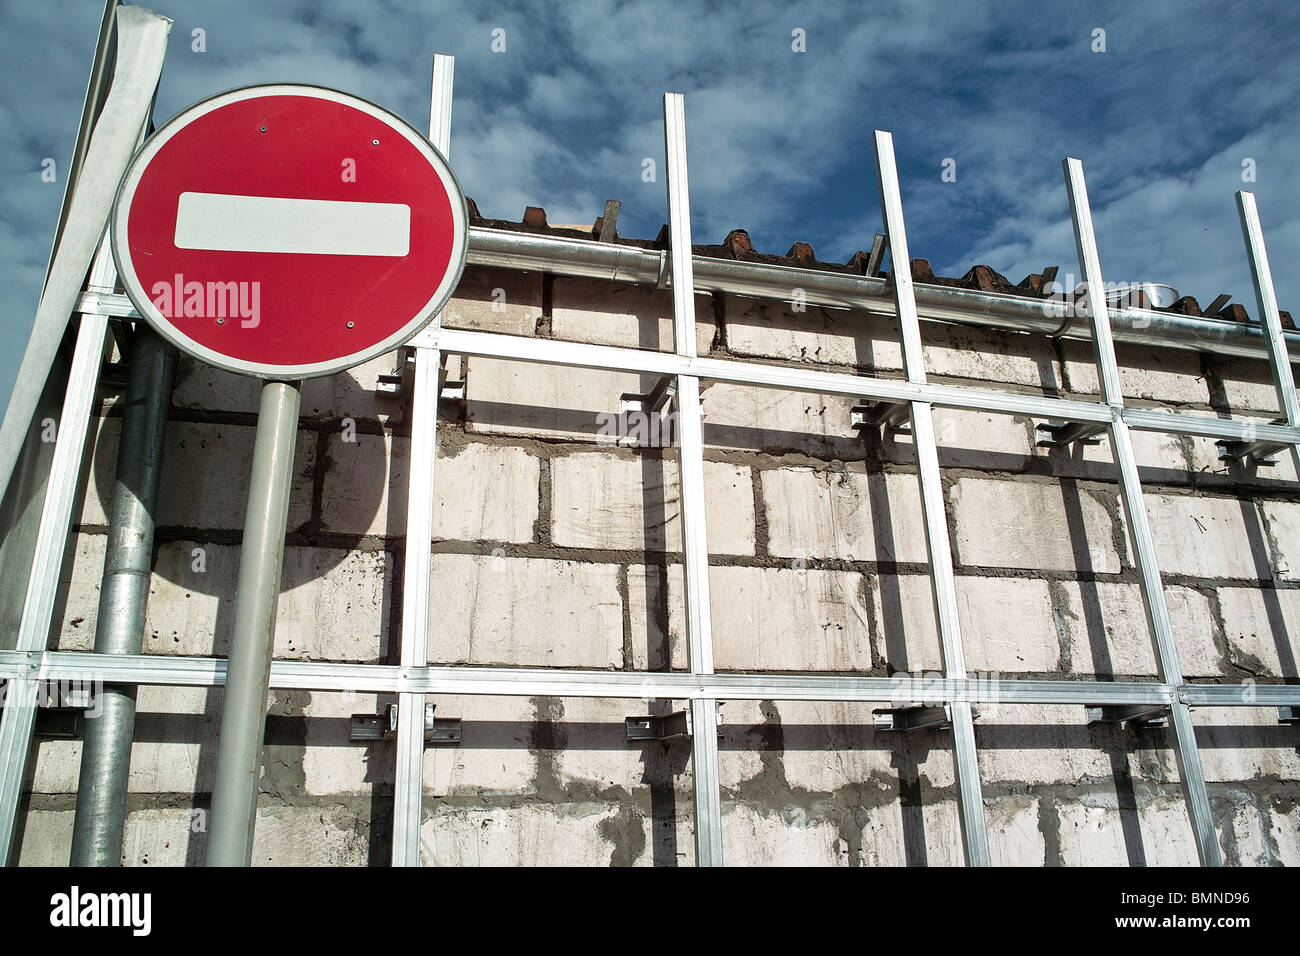 Red and white no entry road sign near the brick wall in midday time - Stock Image